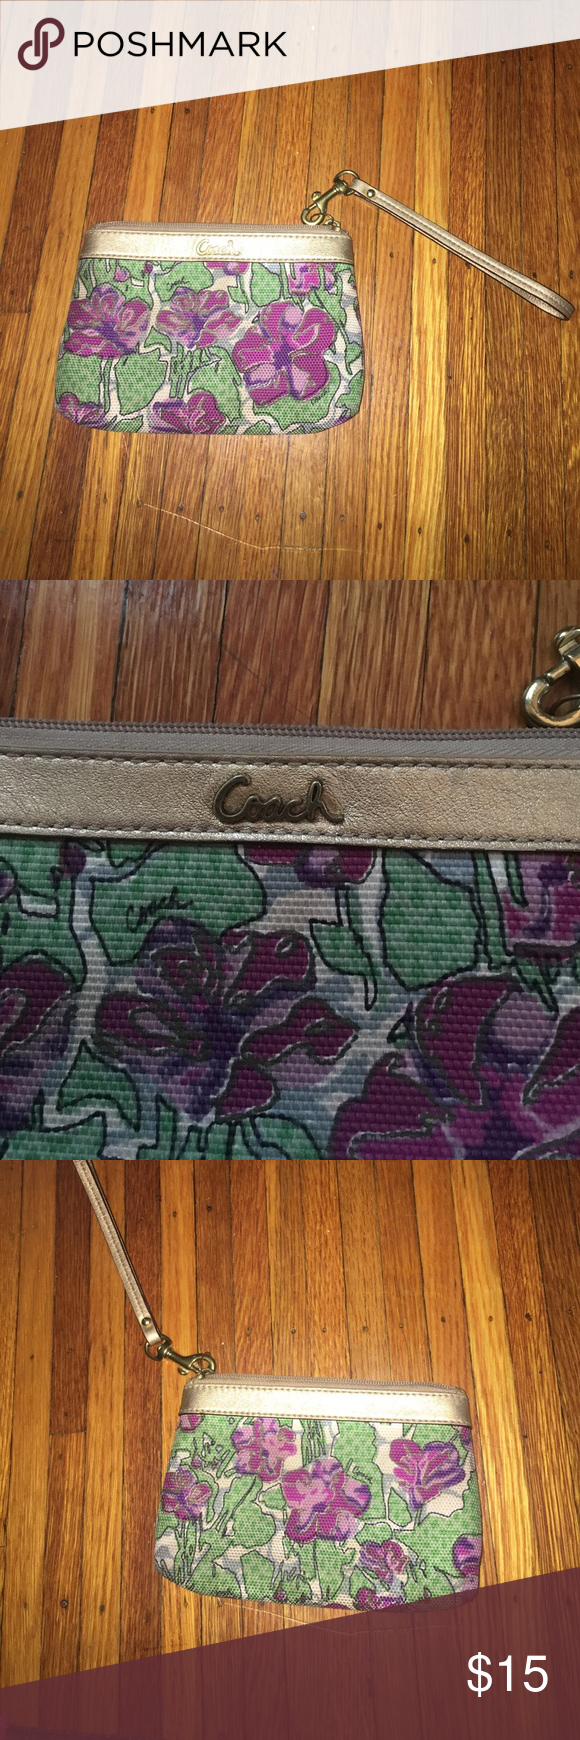 Coach wristlet Floral coach whistle! I don't have the tags anymore but it's still in good condition!  Slight light stains on the inside. Make an offer! Coach Bags Clutches & Wristlets